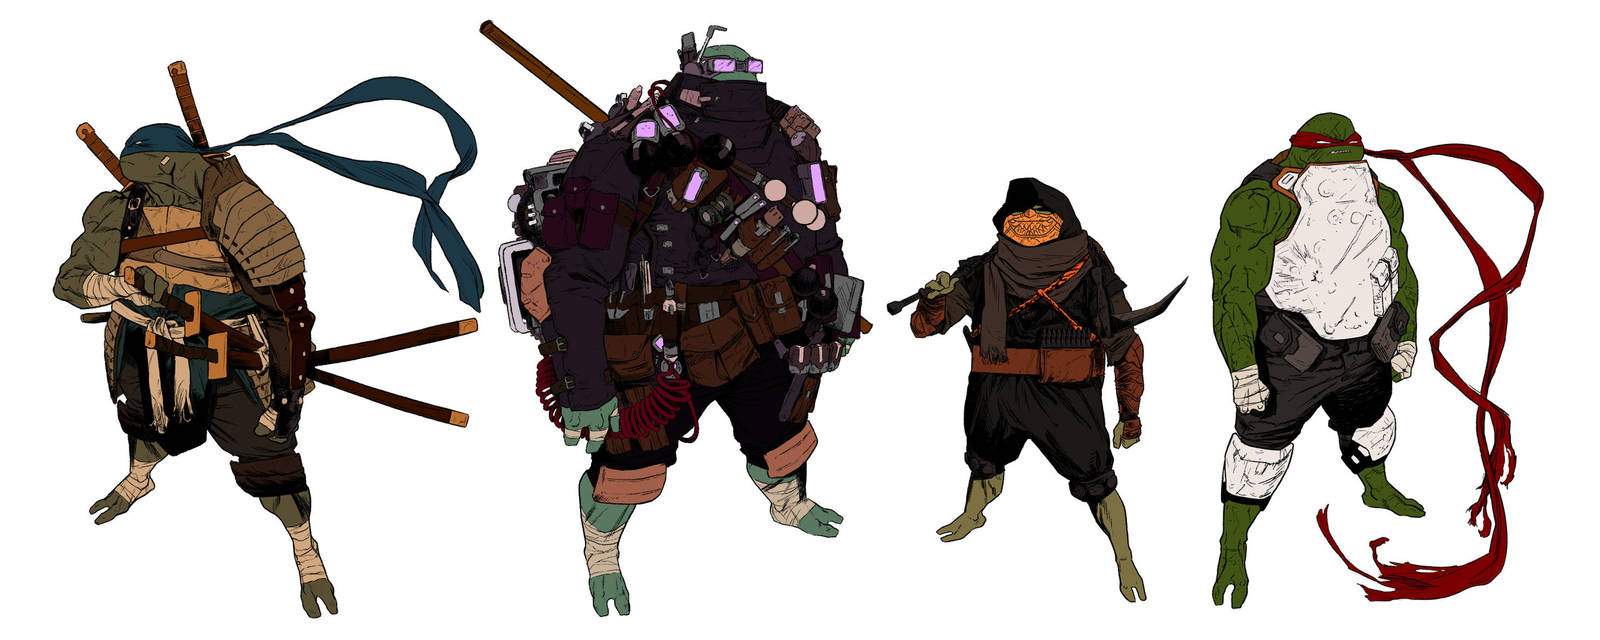 the turtles by anklesnsocks